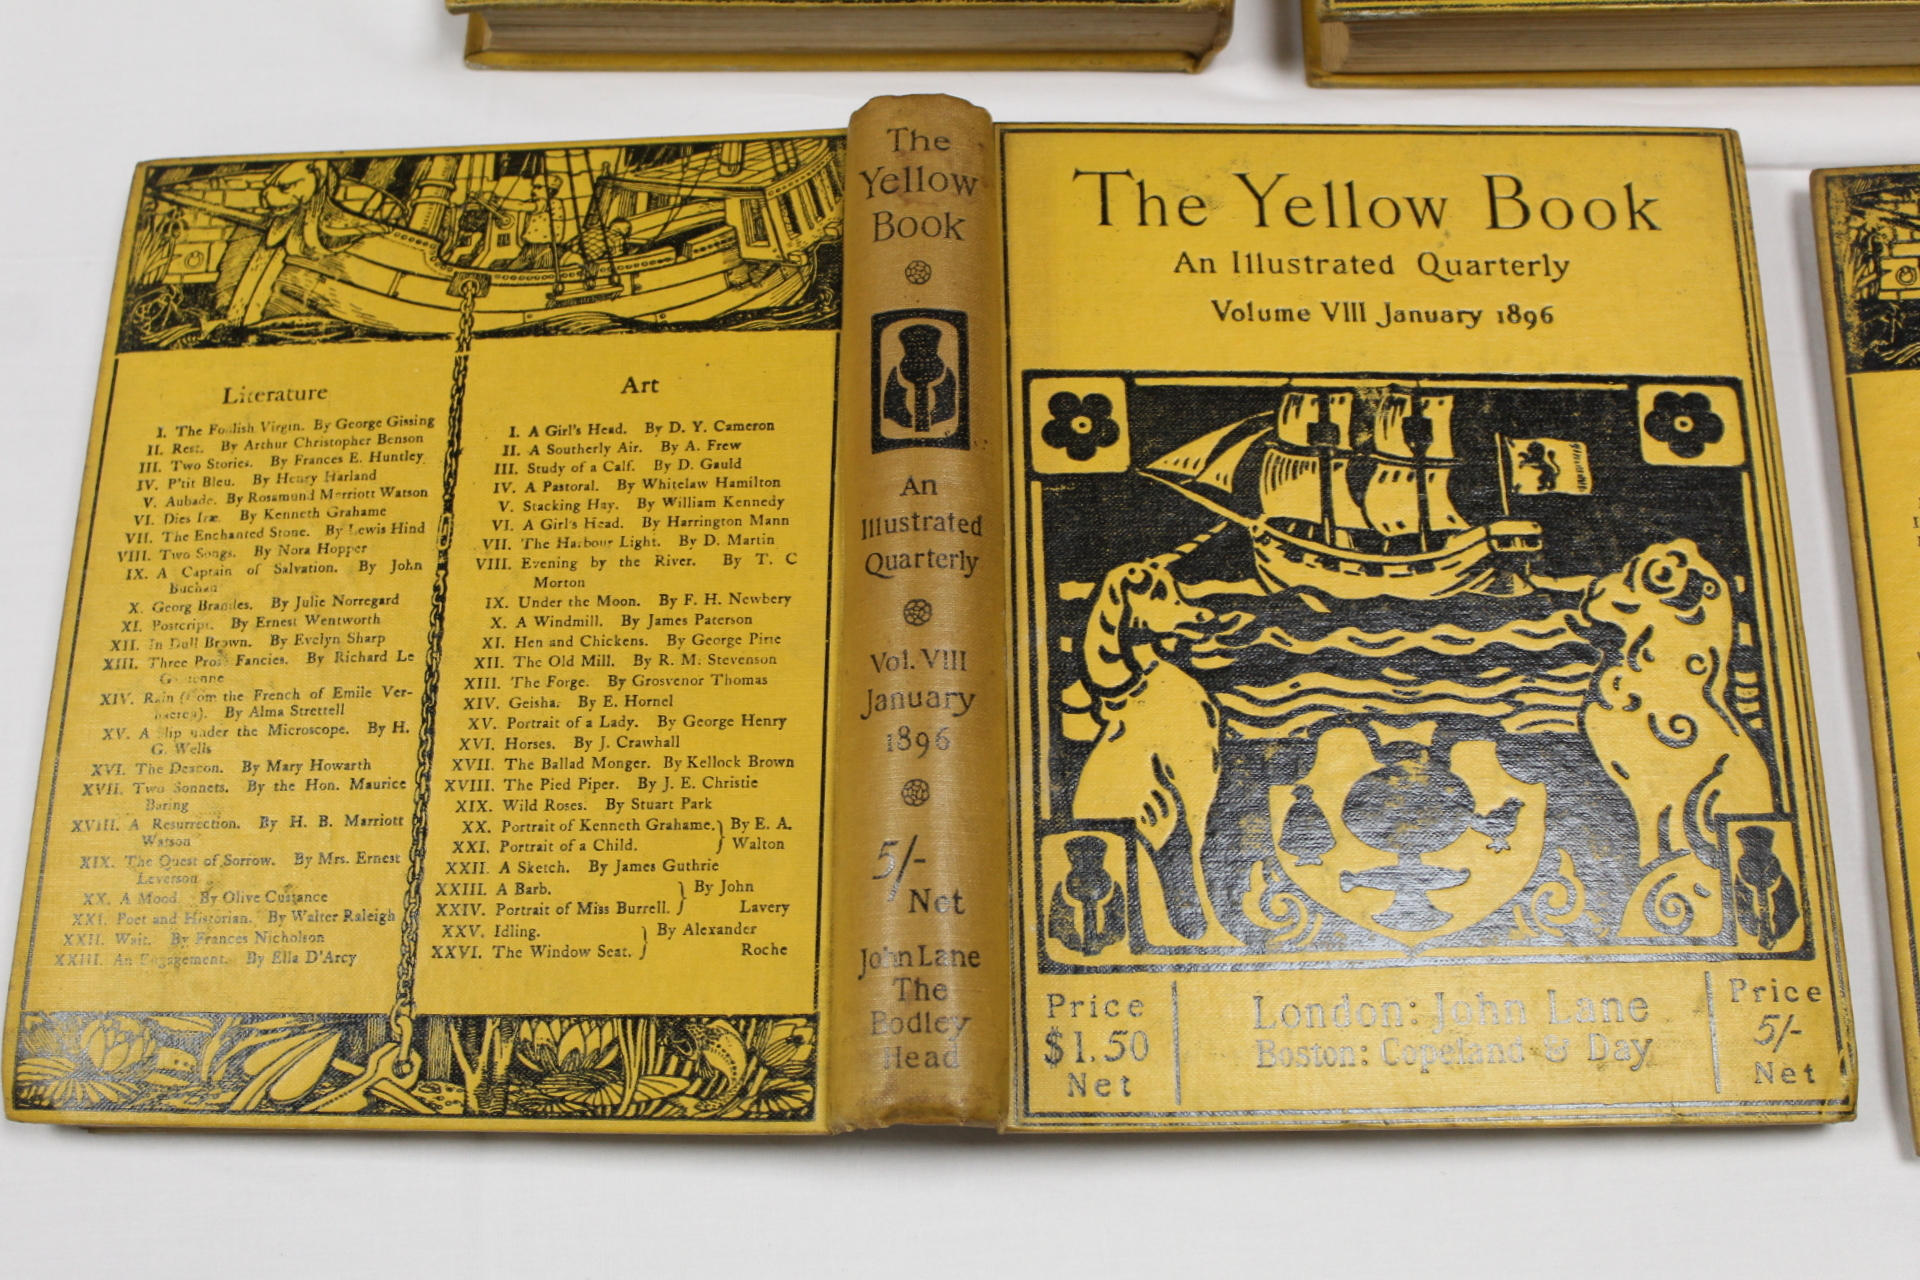 THE YELLOW BOOK.An Illustrated Quarterly. A set of 13 vols., many fine illus. Small quarto. - Image 43 of 45